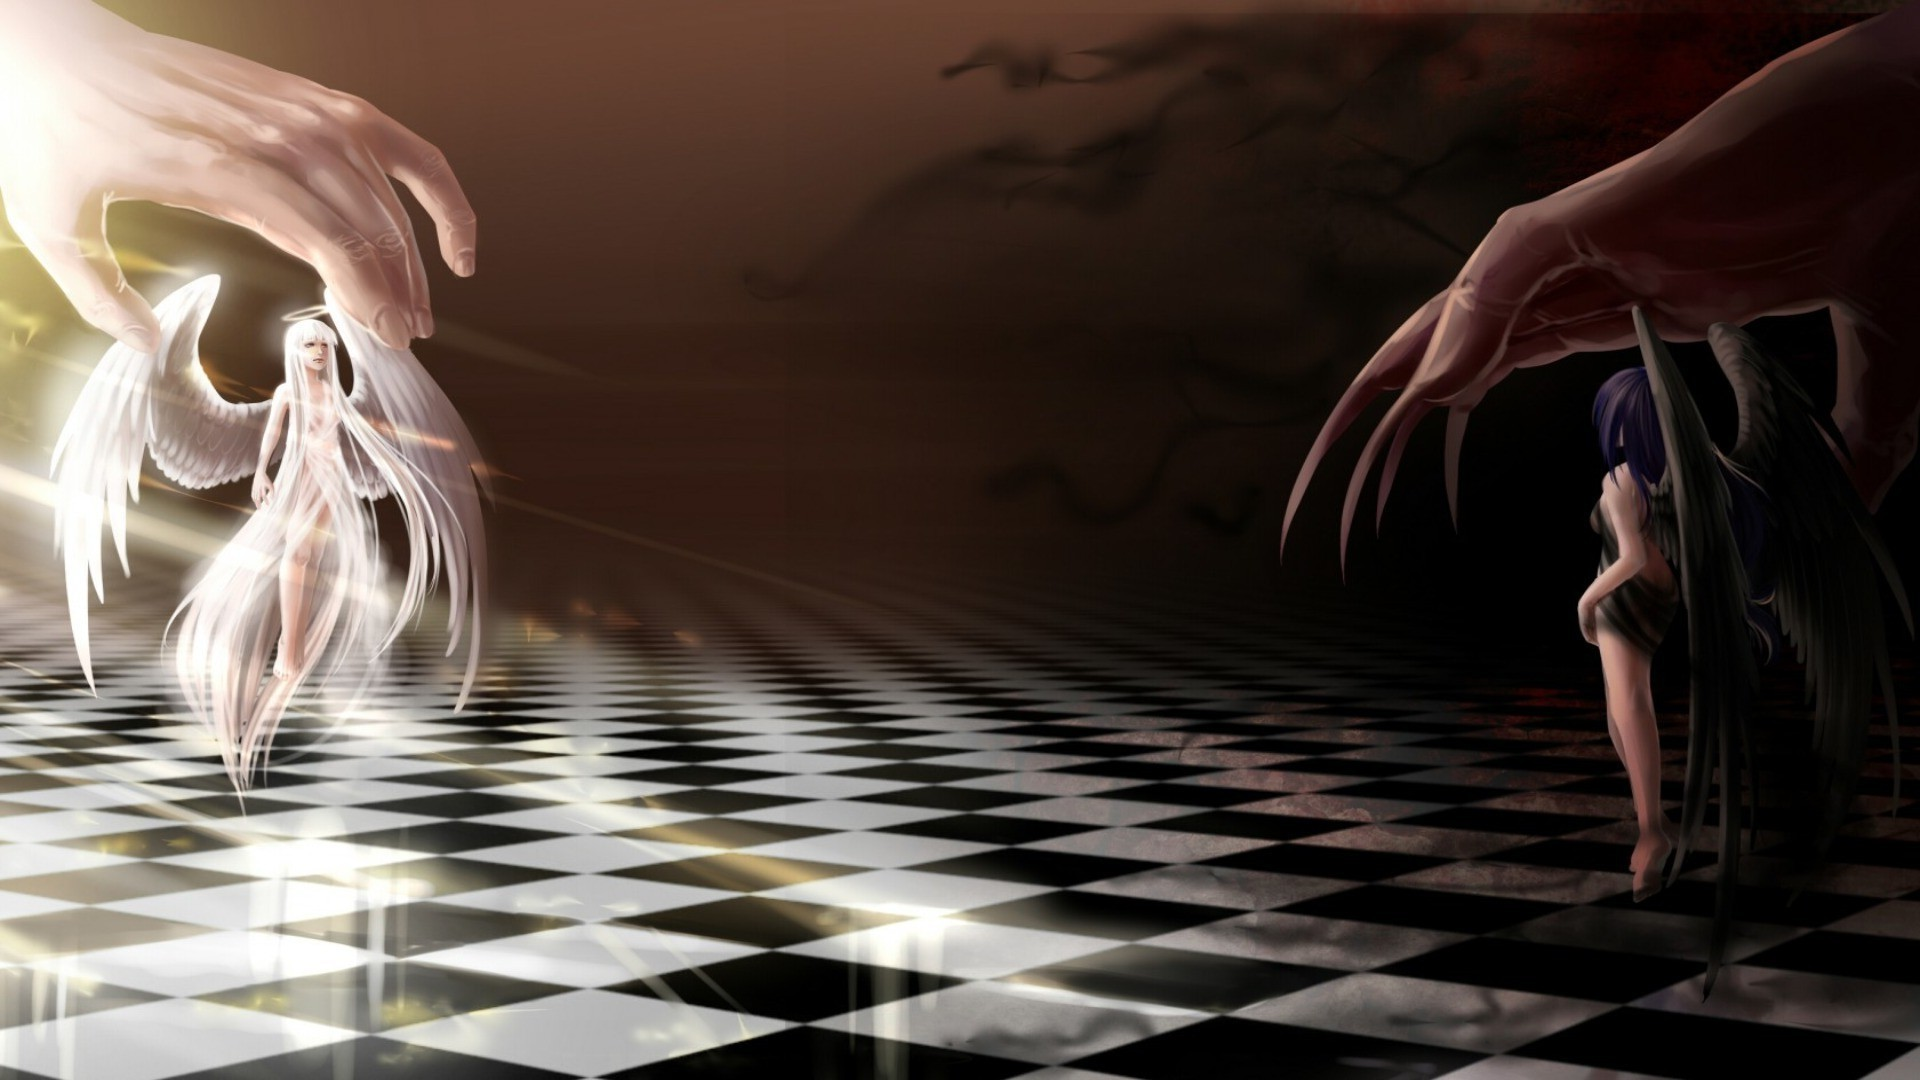 Anime Demon Girls Wallpaper Angel And Demon Are Playing Chess Phone Wallpapers